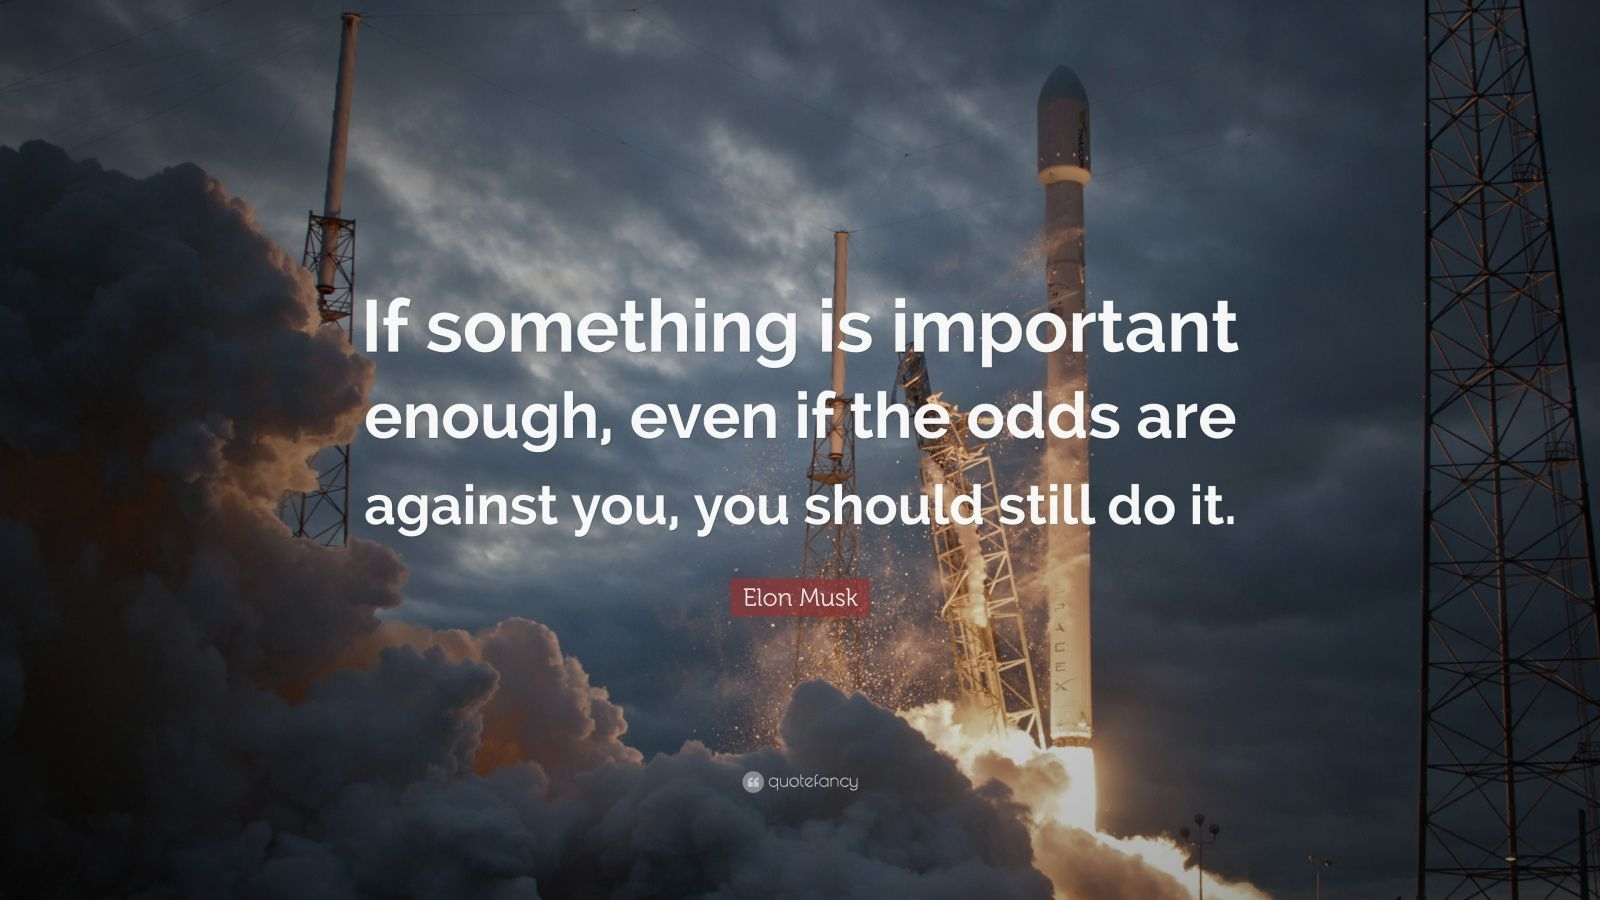 elon musk quotes (100 wallpapers) - quotefancy